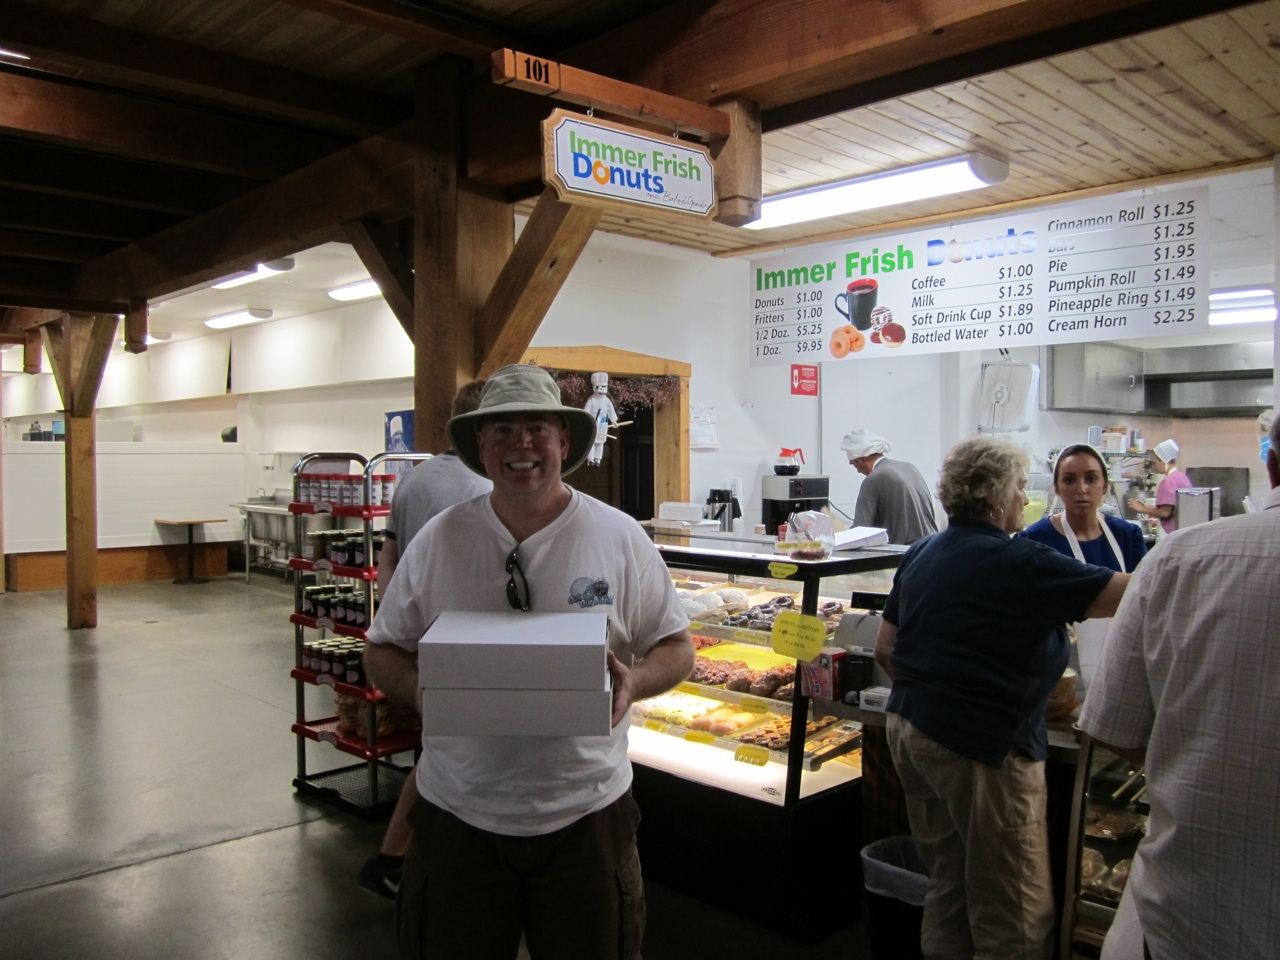 David With Immer Frish Donuts